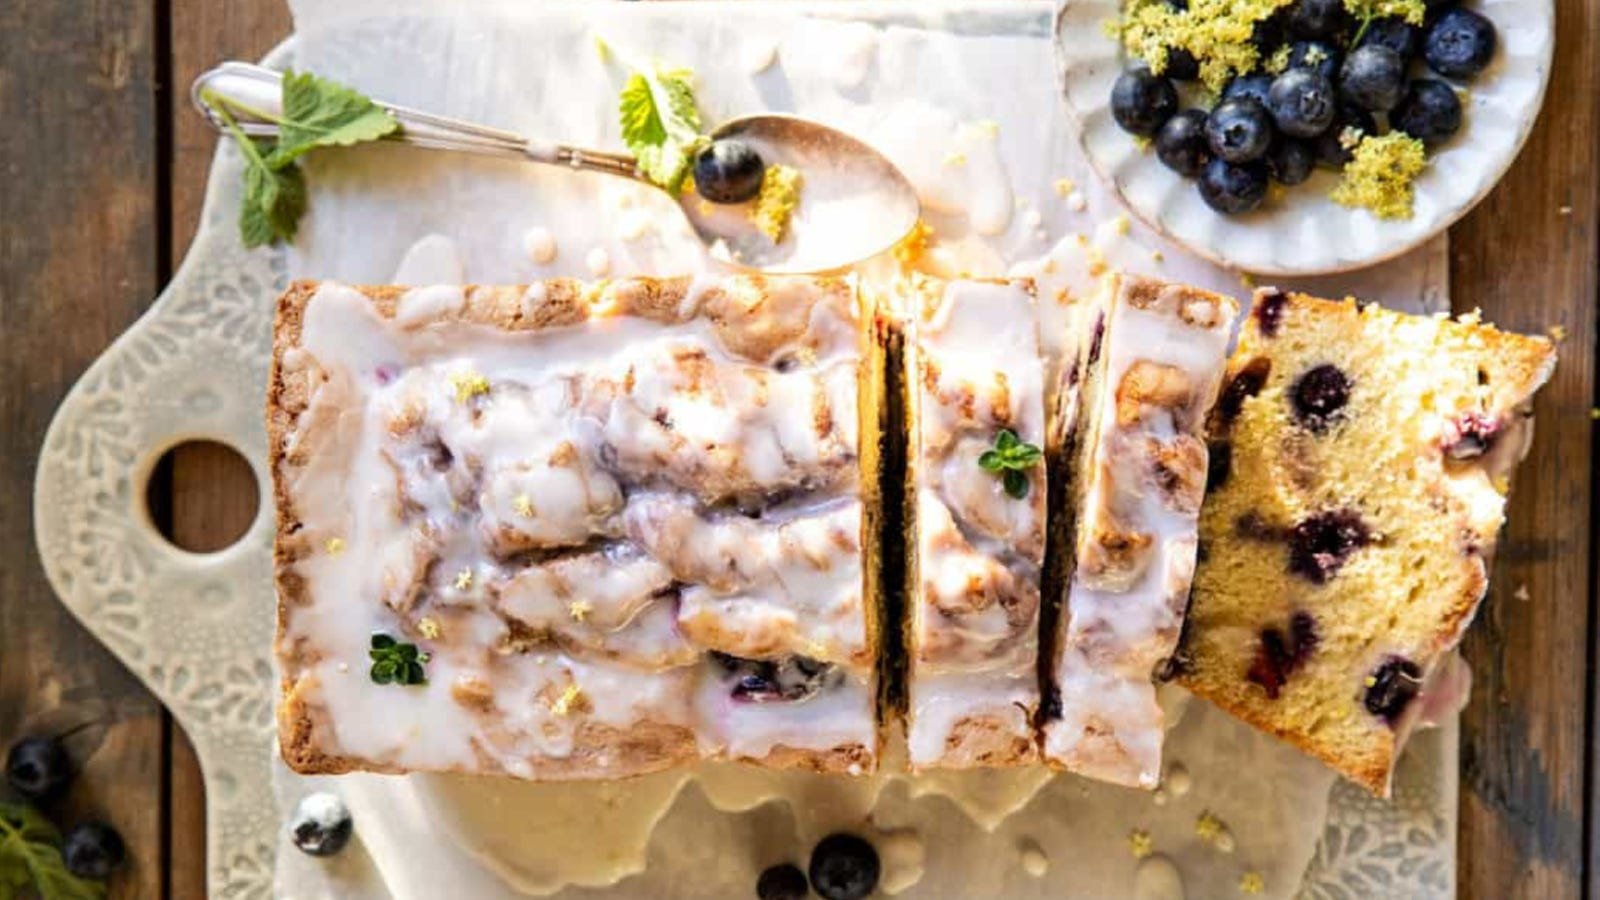 A loaf of blueberry lemon thyme cake with blueberries and a spoon coated with thyme glaze on the side.